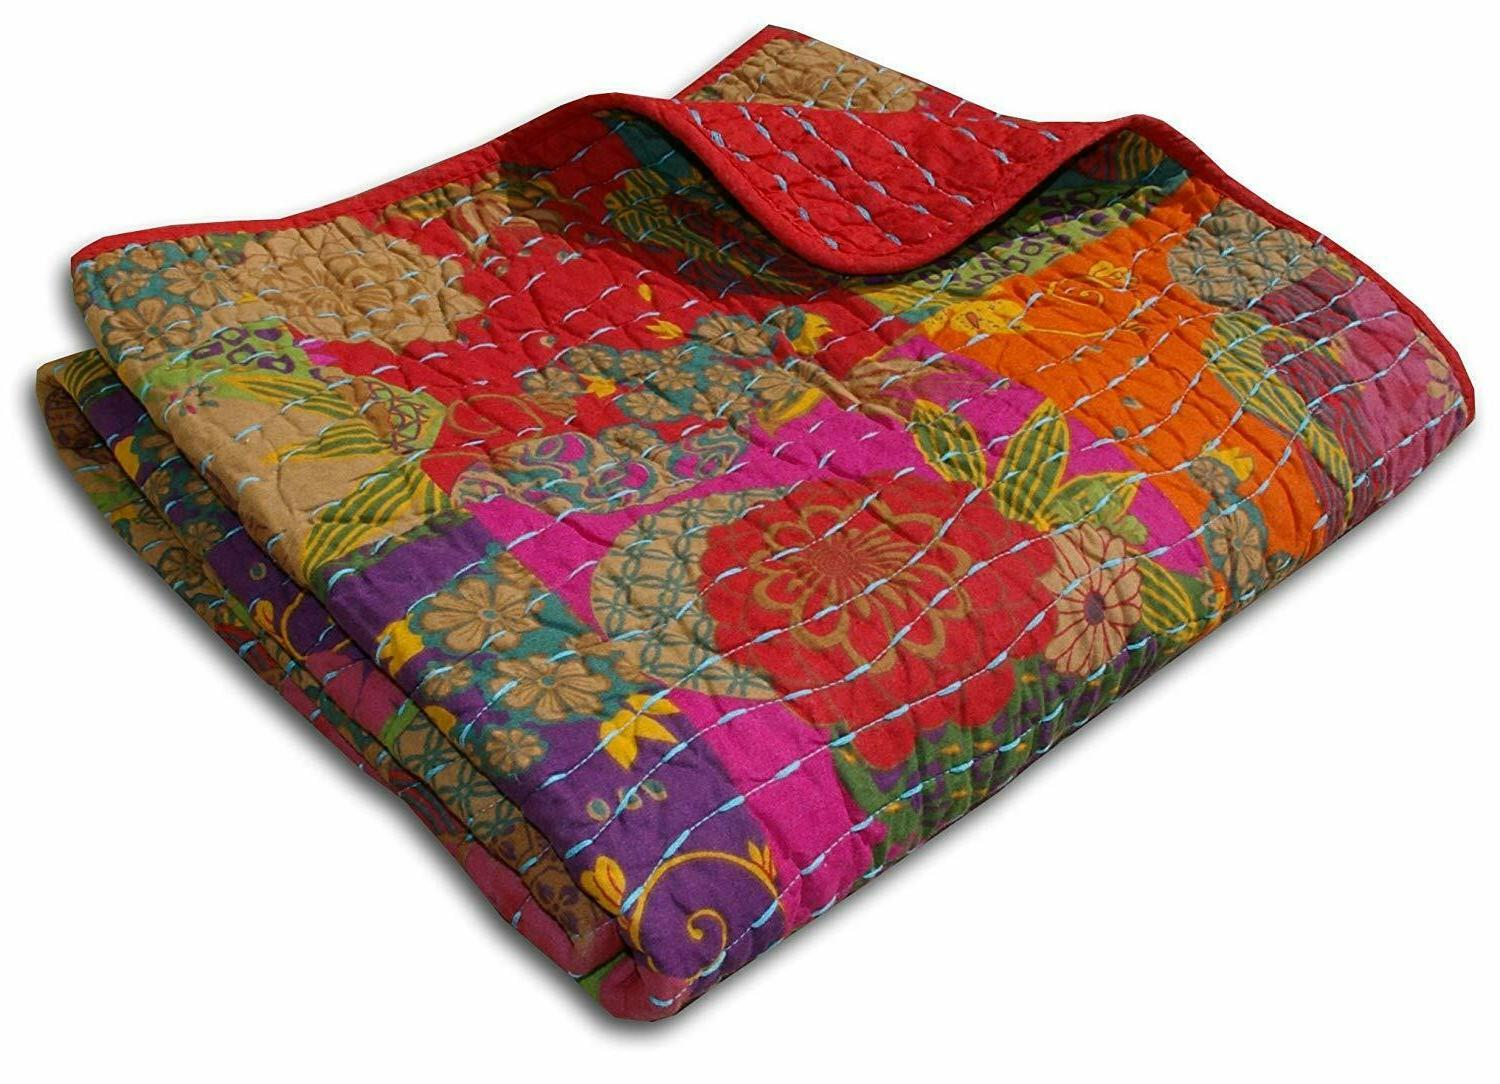 Greenland Jewel Multicolor, Imported, Natural, Comfort